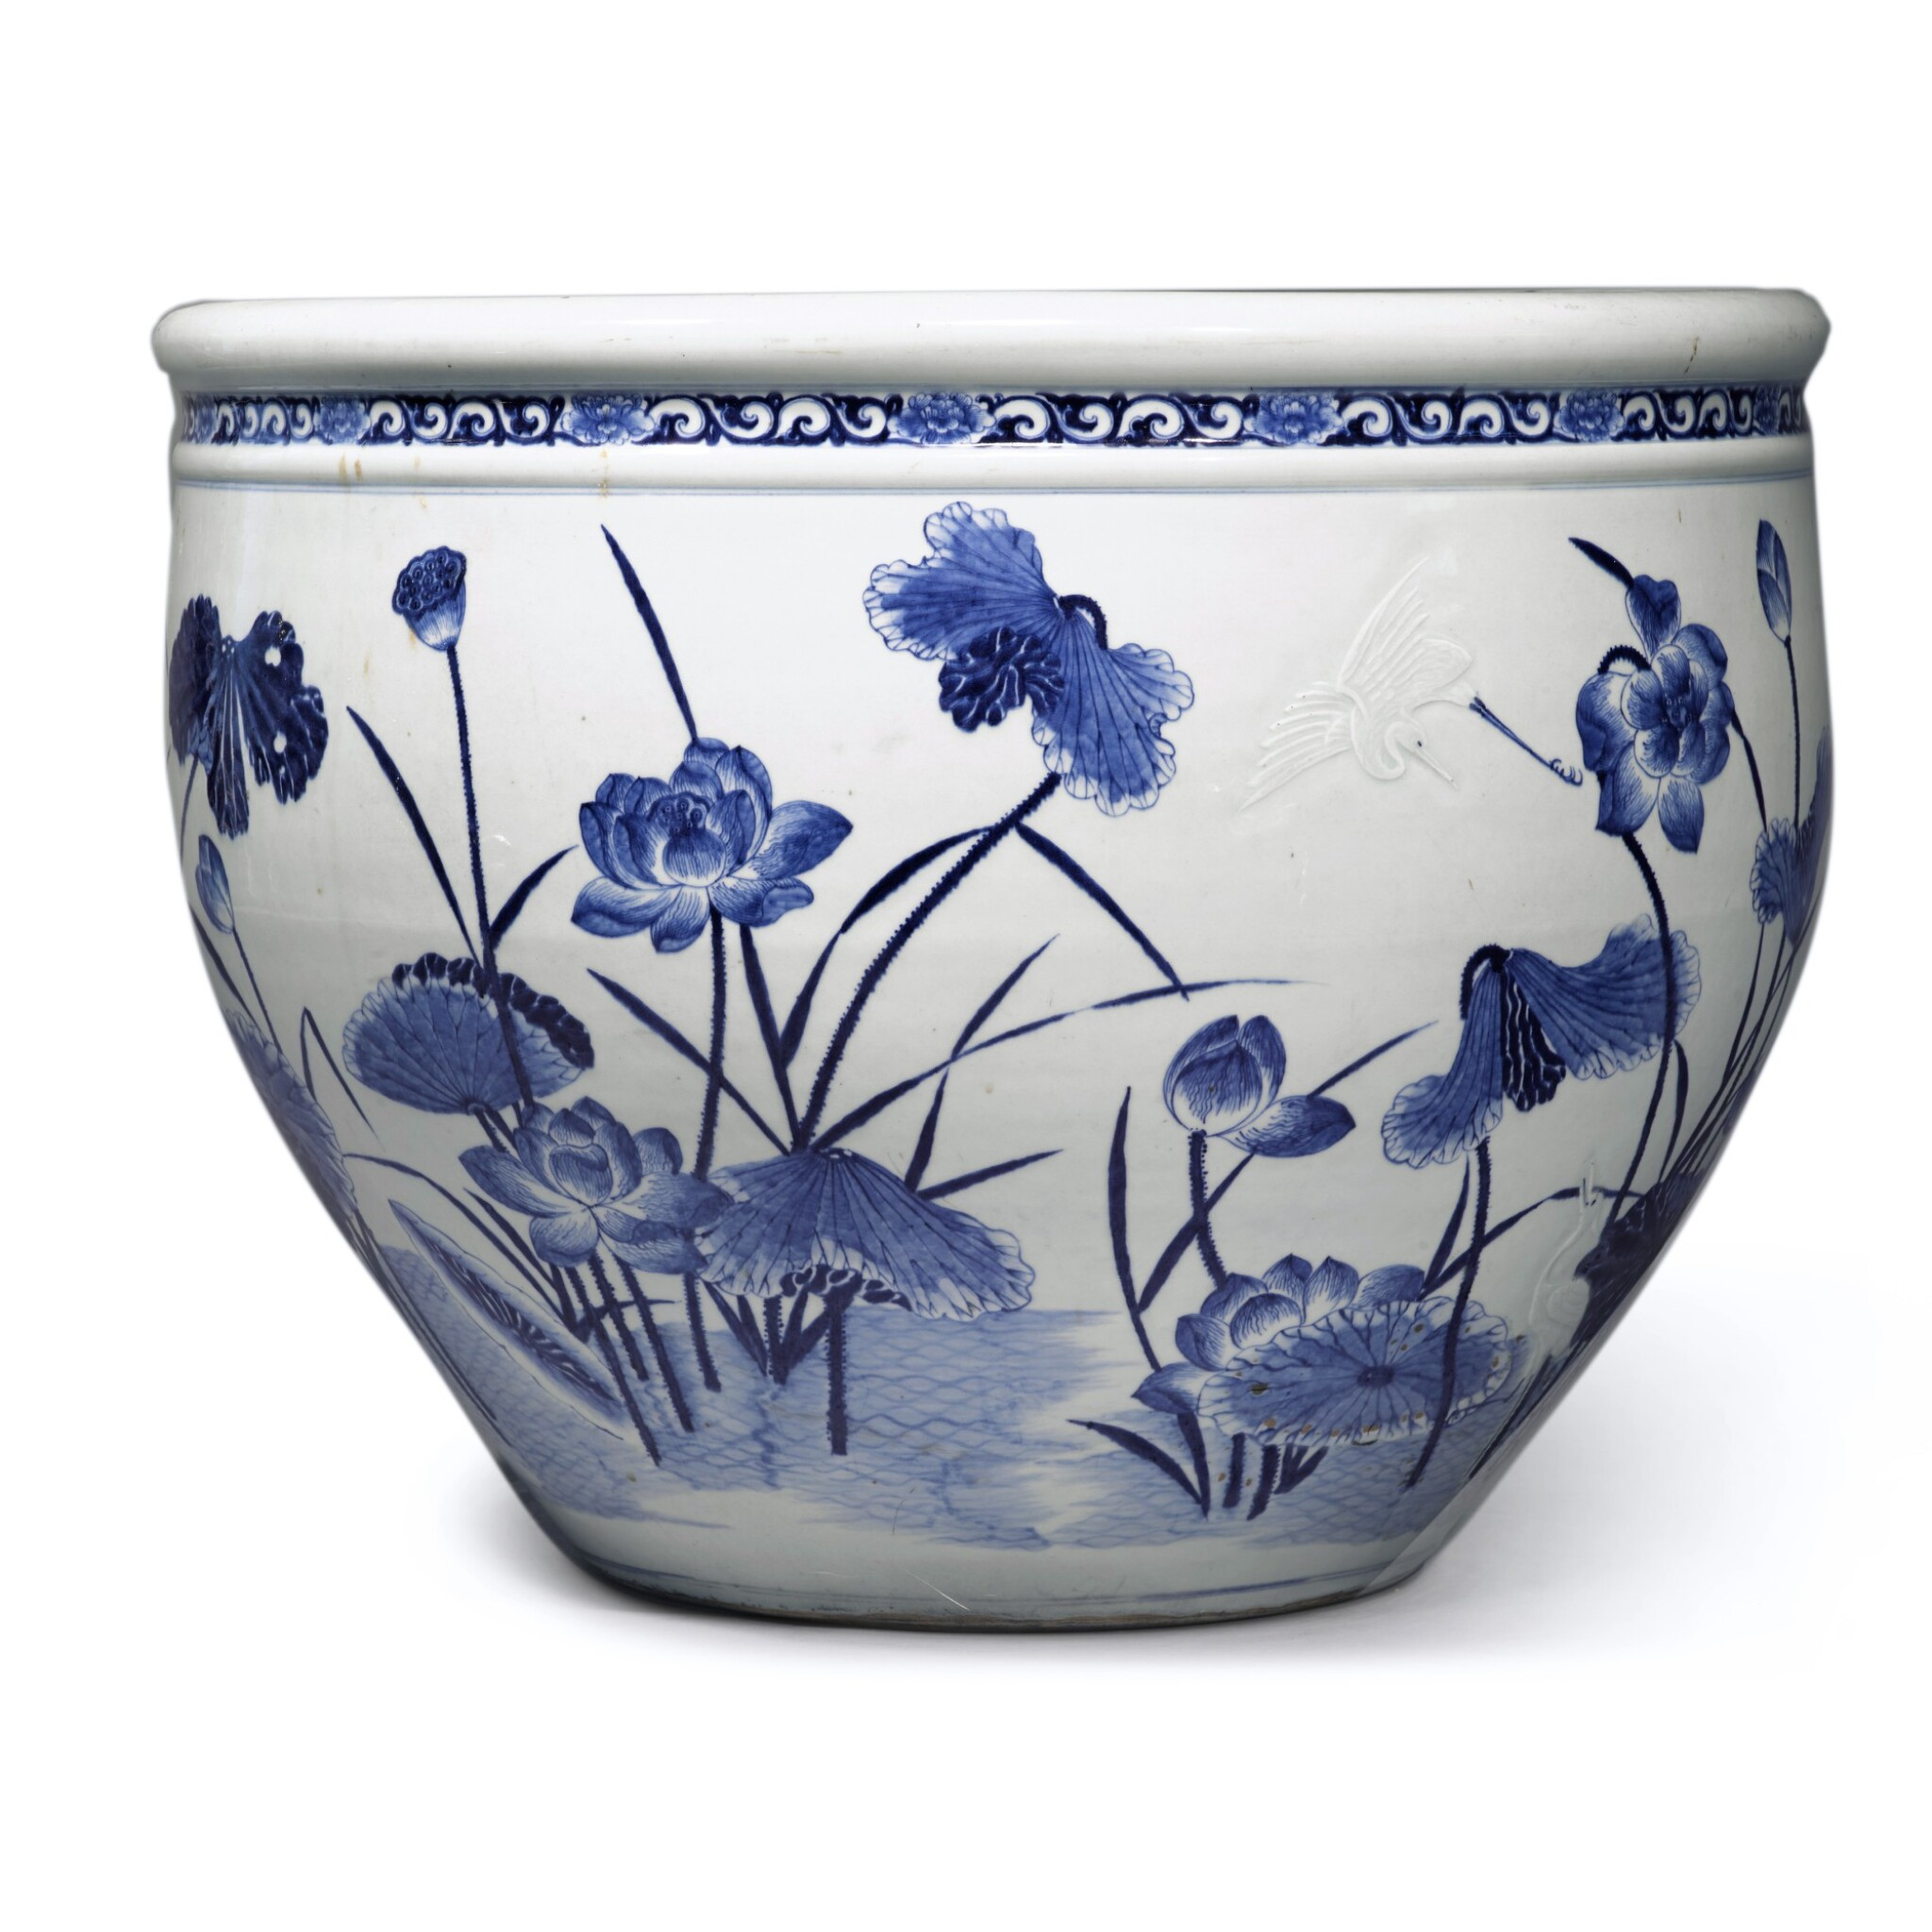 View full screen - View 1 of Lot 78. A large blue and white 'lotus pond' jardinière, Qing dynasty, 18th century | 清十八世紀 青花浮雕路路連科圖大缸.